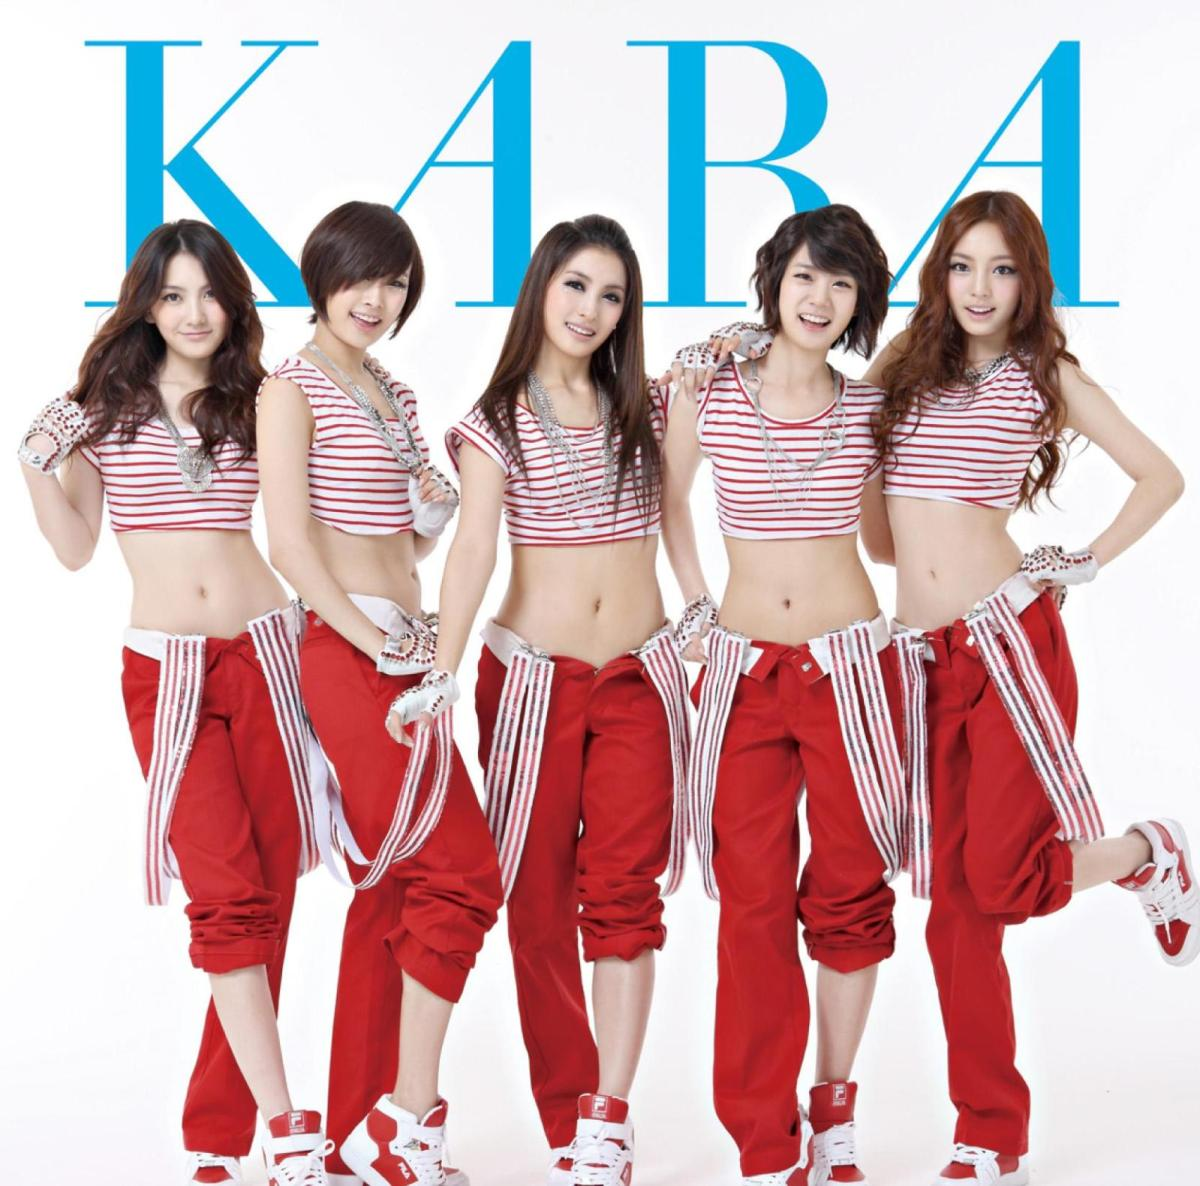 K-Pop Kara Makes An Appearance on DJ Max Technika